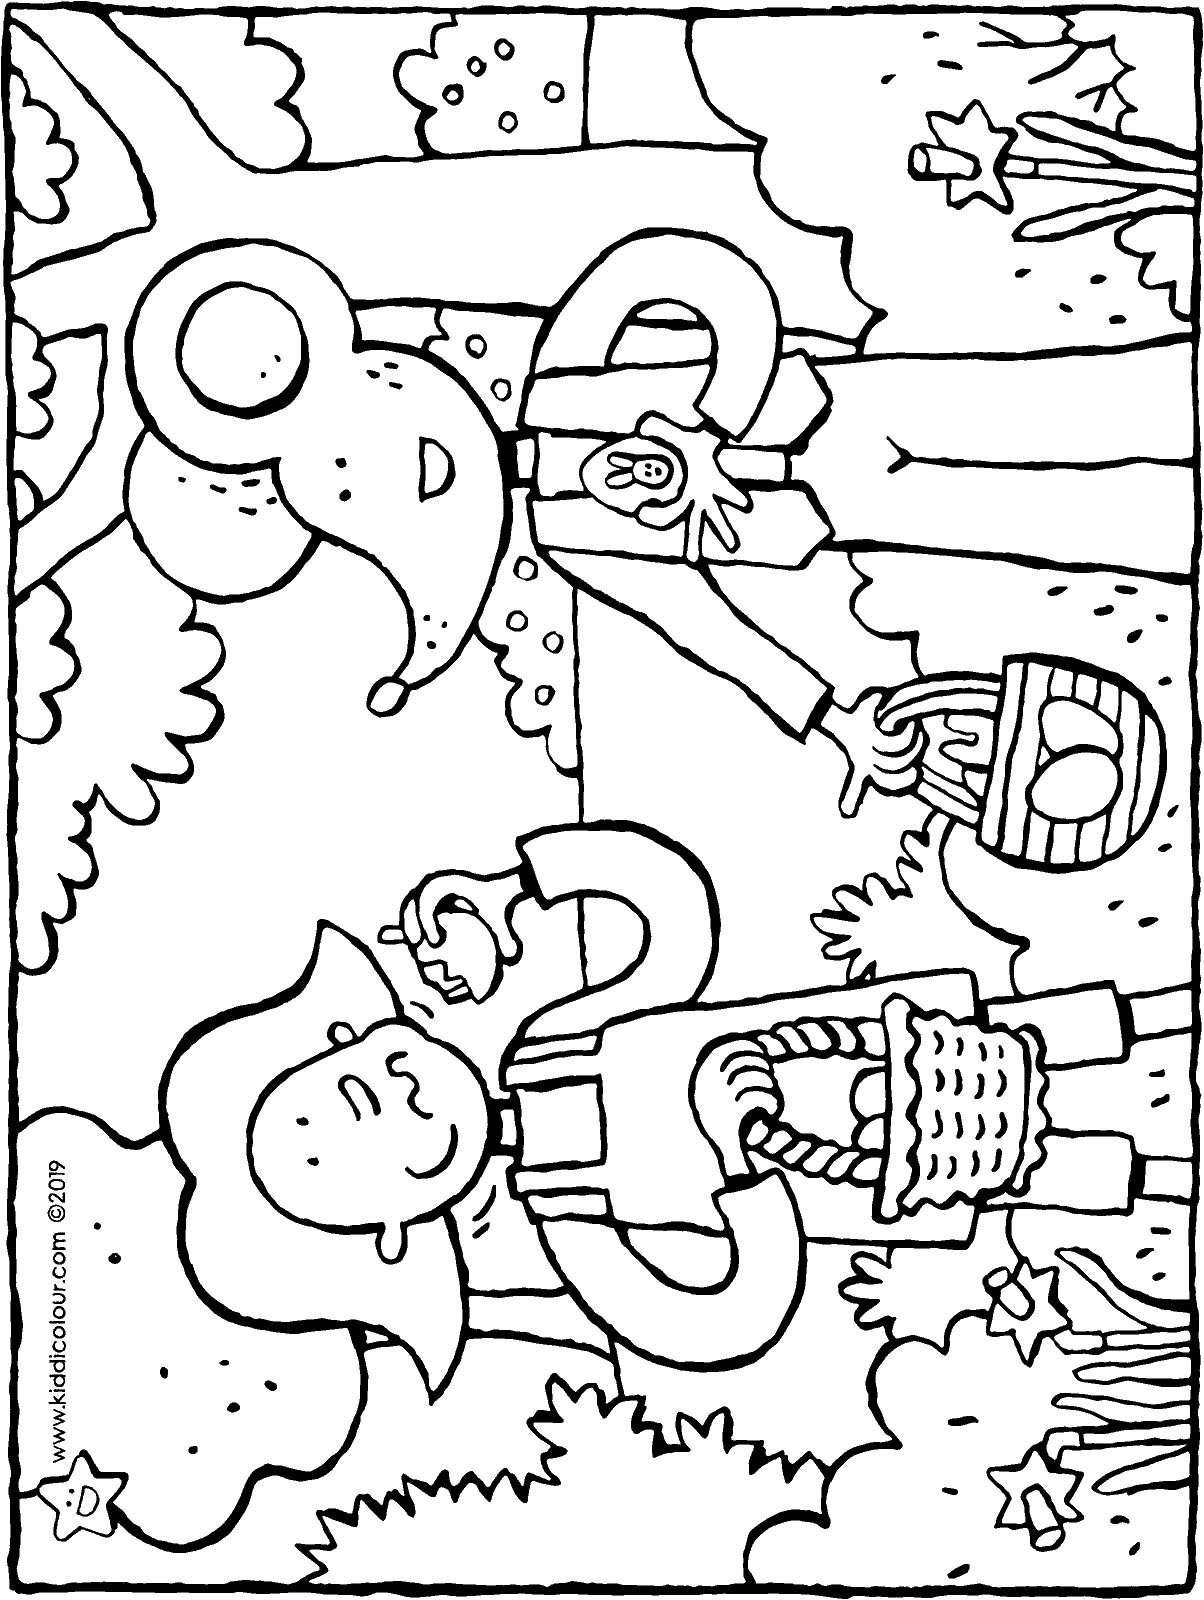 Emma and Thomas's Easter eggs colouring page drawing picture 01H